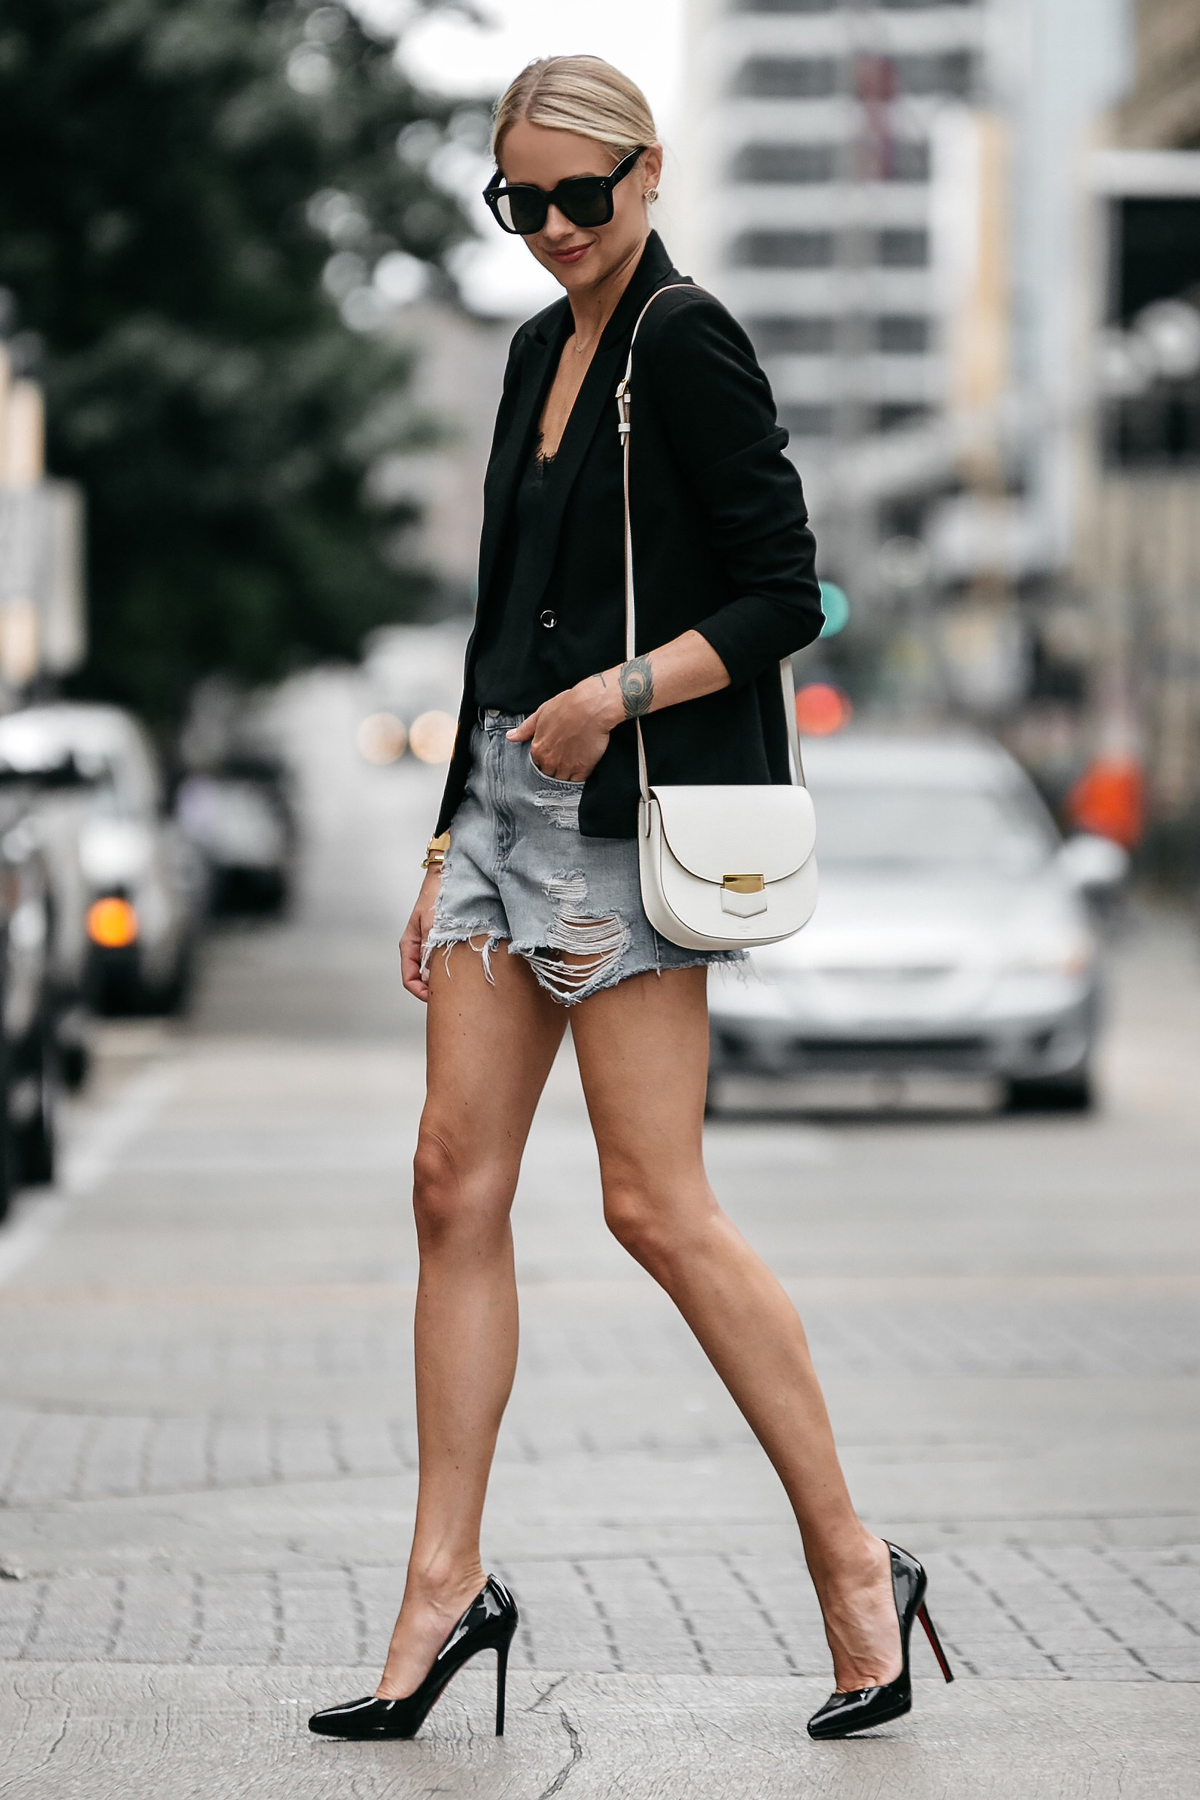 Blonde Woman Wearing Nordstrom Black Blazer Topshop Denim Cutoff Shorts Outfit Christian Louboutin Black Pumps Celine White Trotteur Handbag Street Style Dallas Blogger Fashion Blogger